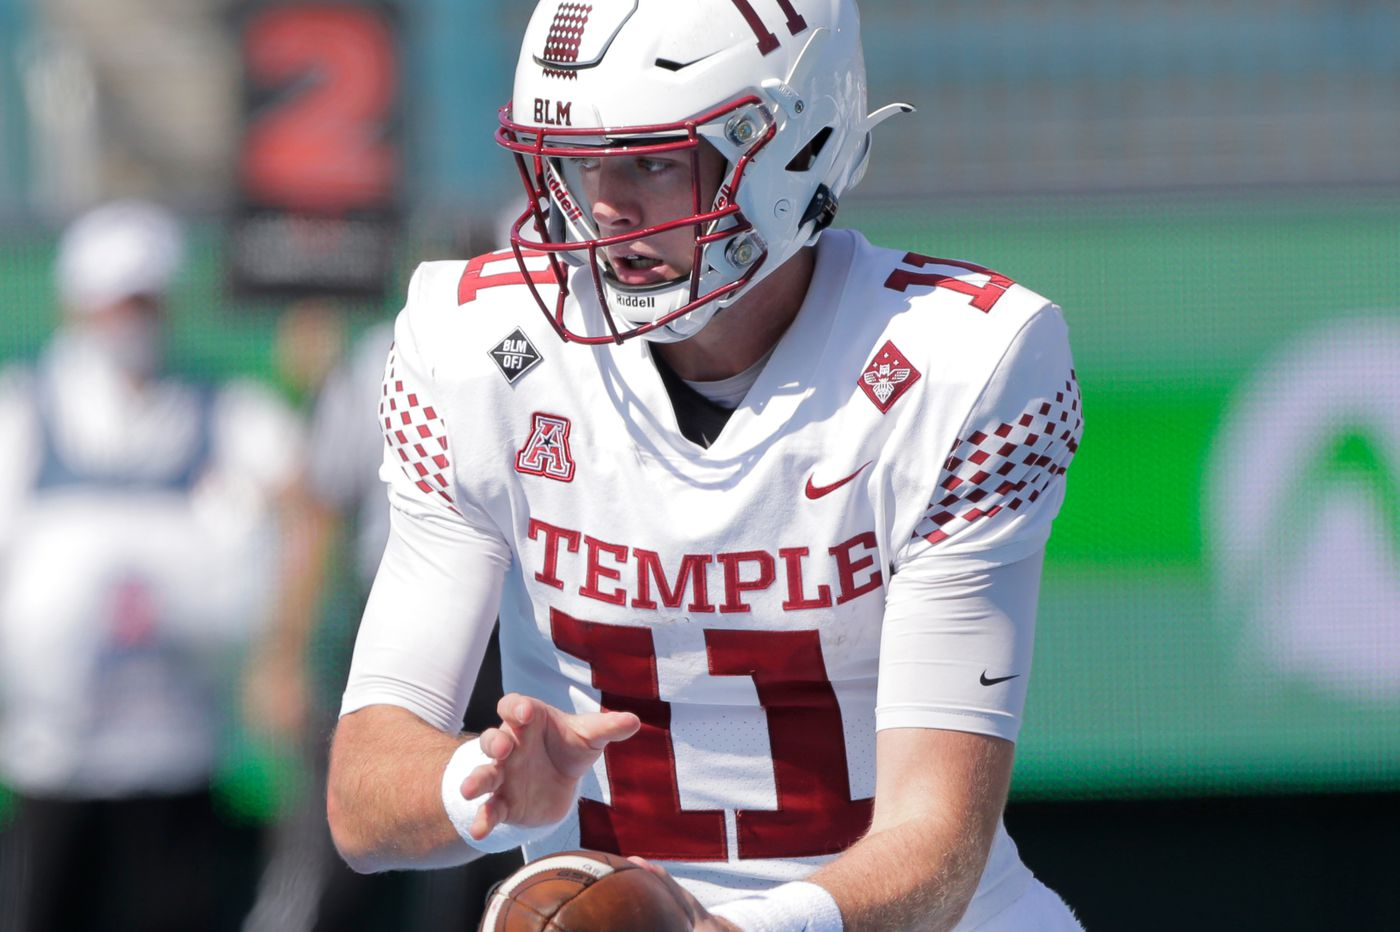 Temple quarterback Anthony Russo out for Saturday against SMU